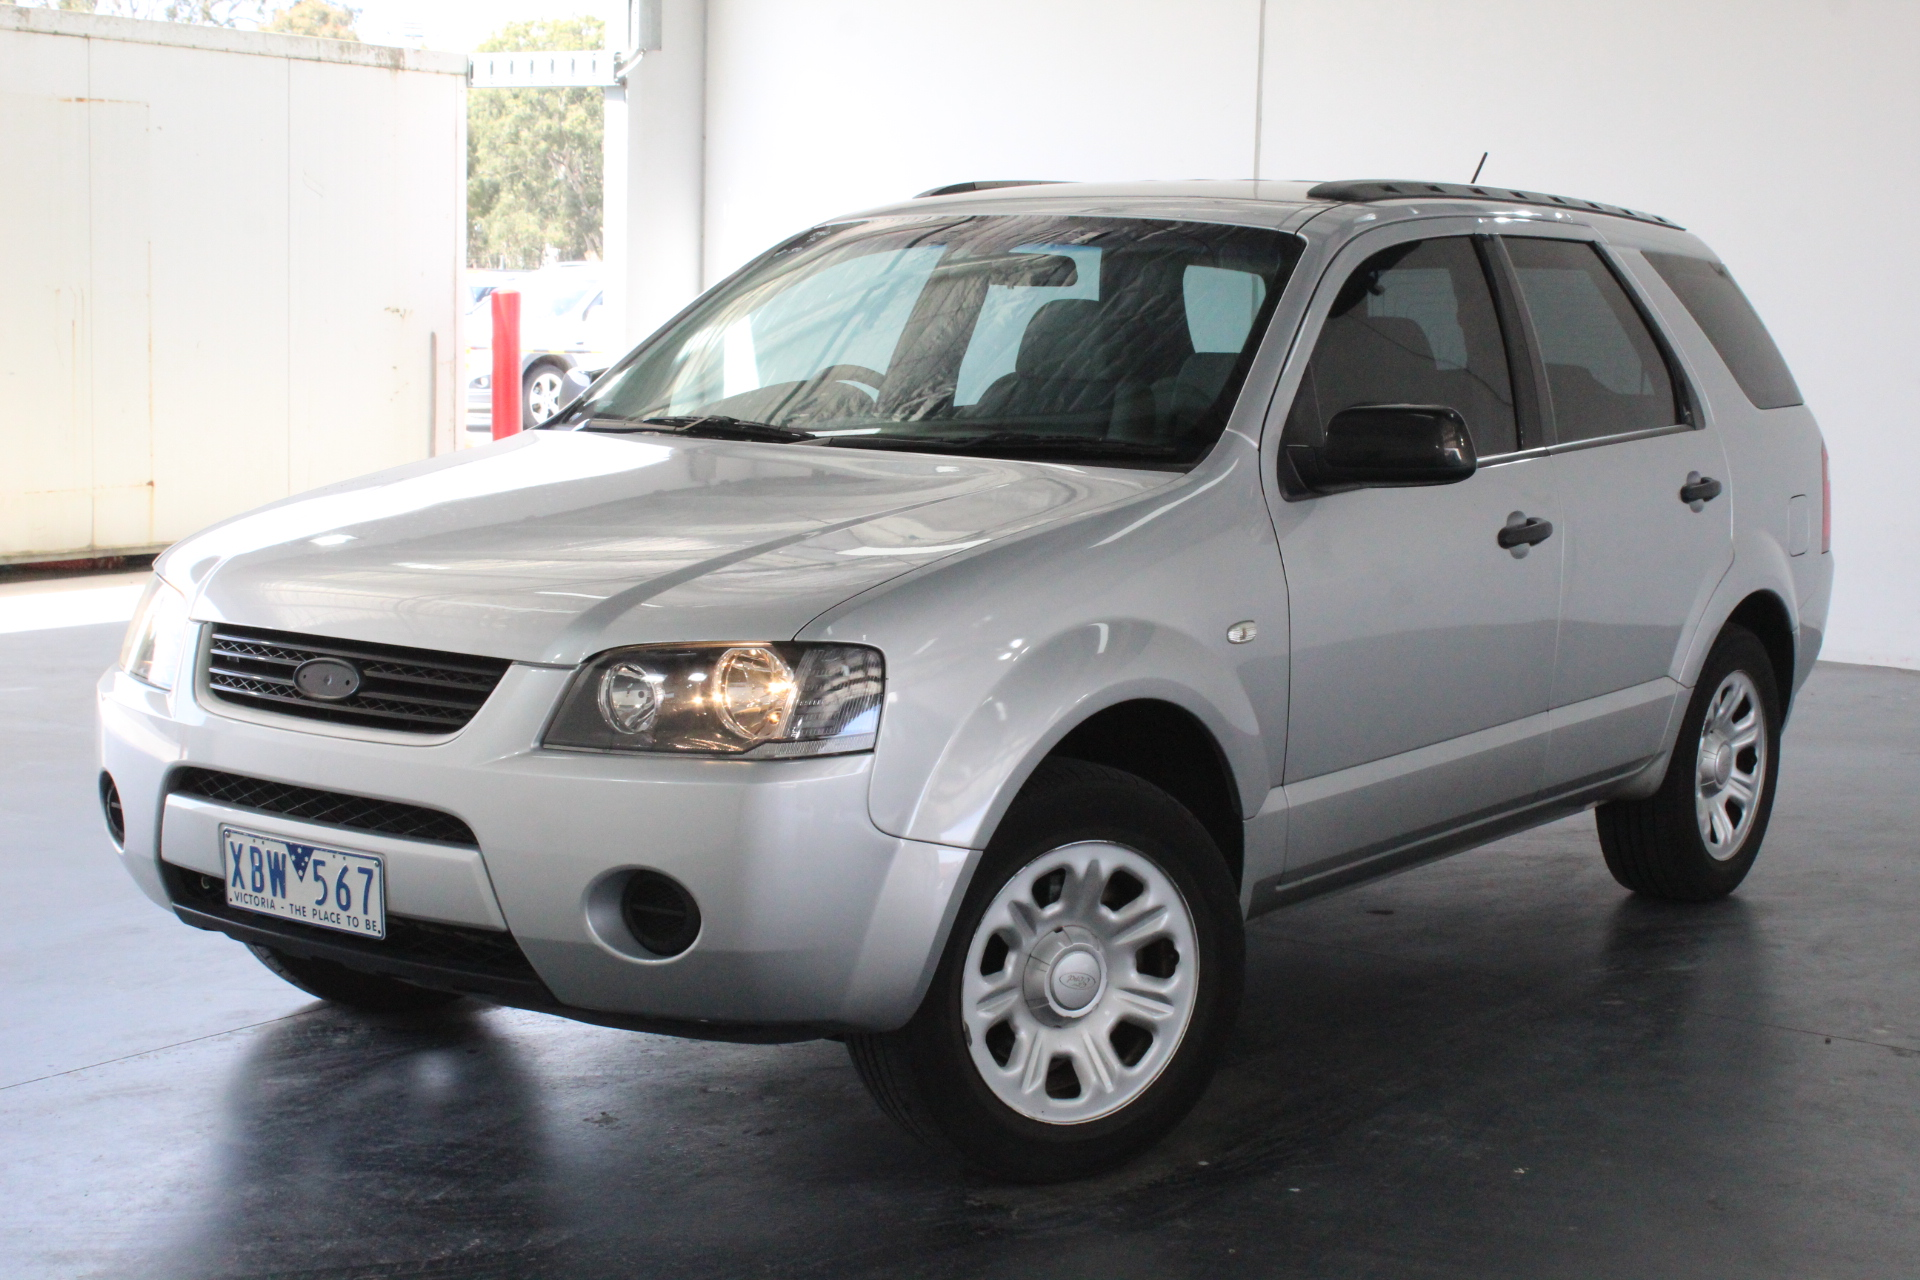 2009 Ford Territory TX (RWD) SY Automatic 7 Seats Wagon